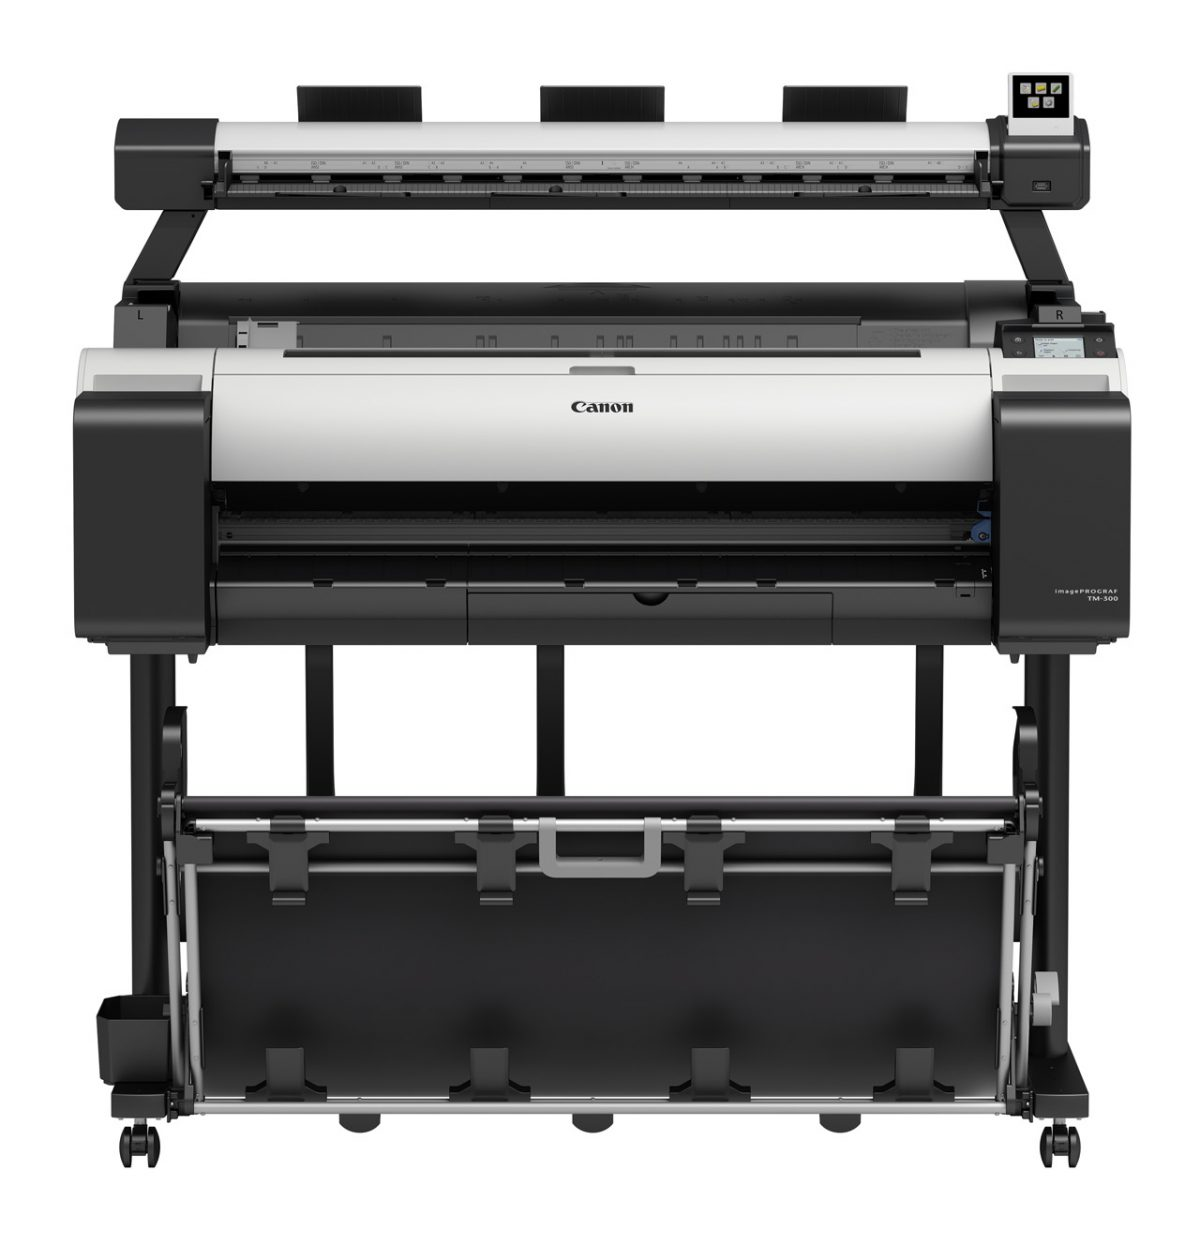 Canon imagePROGRAF TM-300 MFP L36ei (914mm/36in) A0 Scan and Print